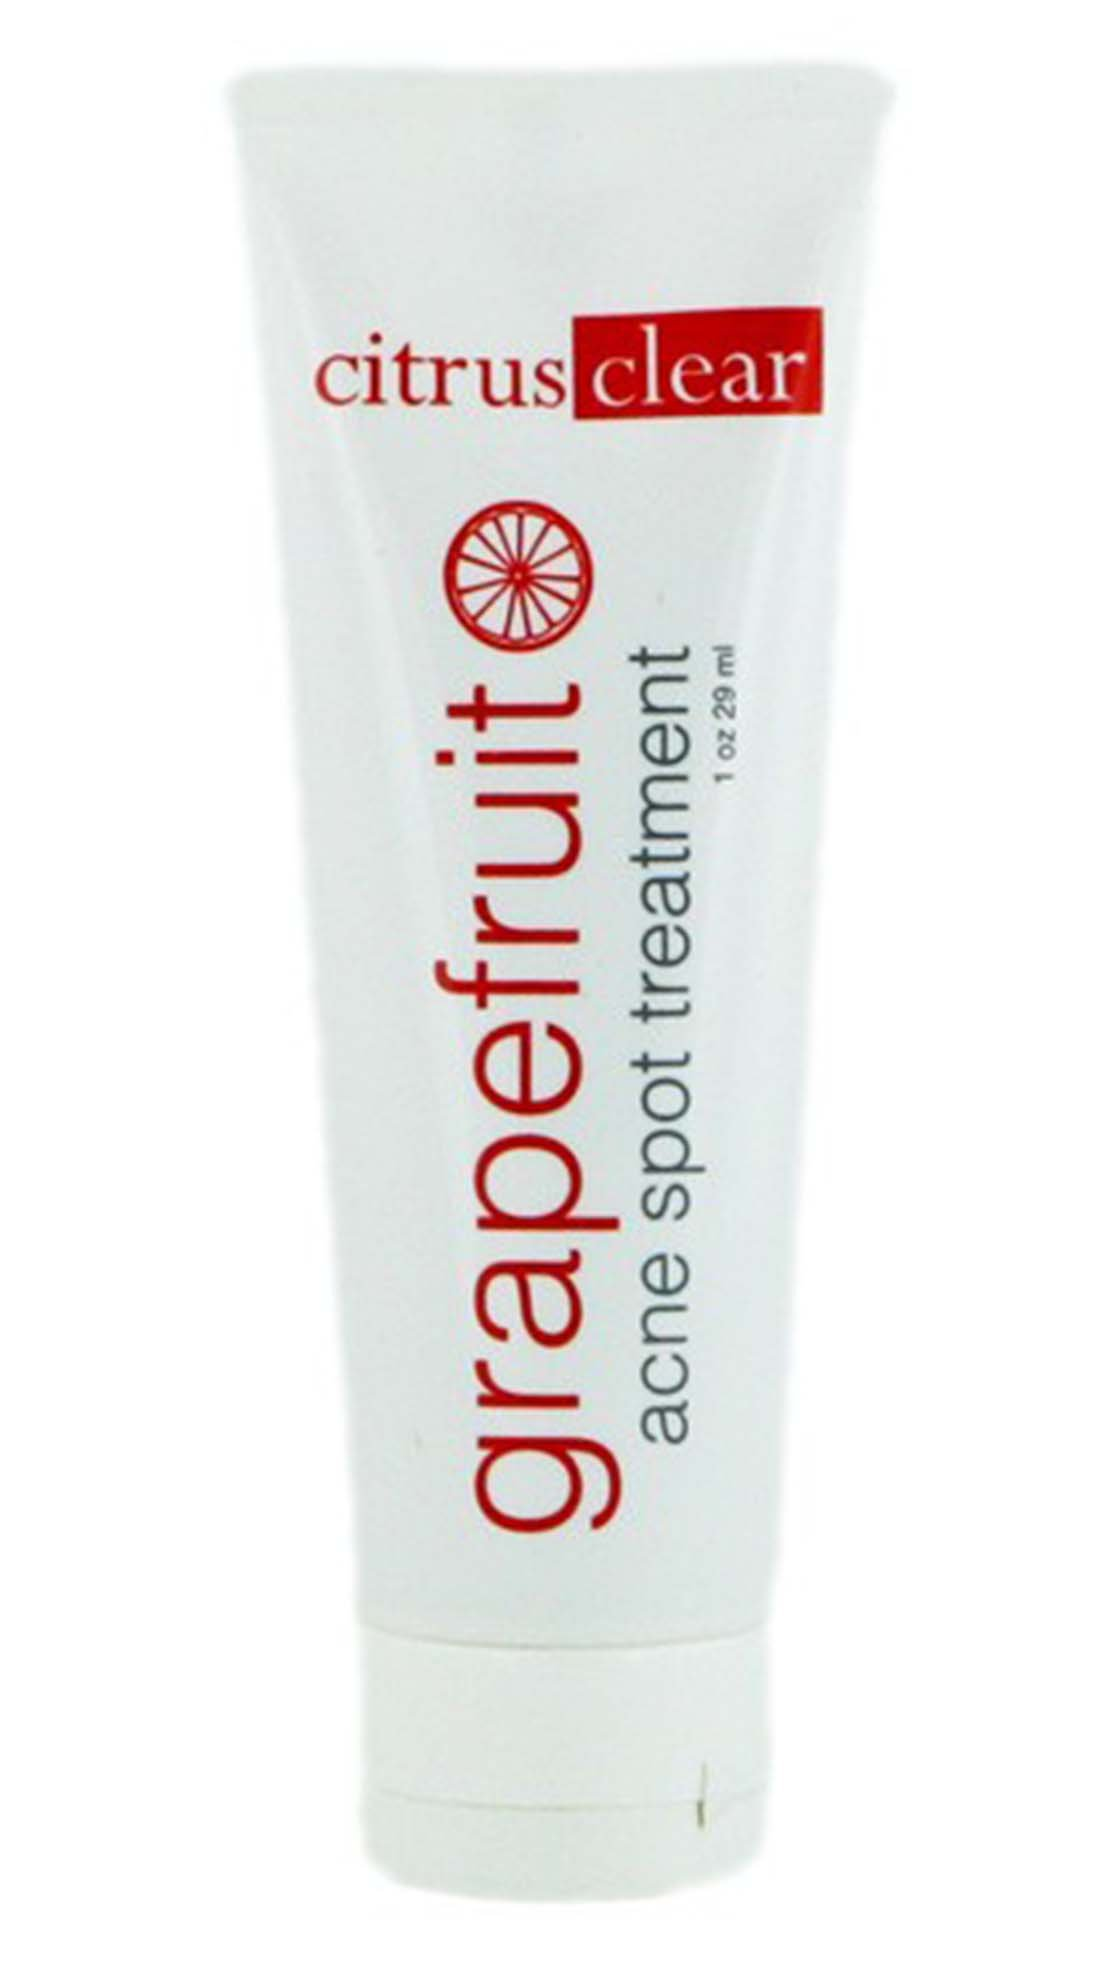 Acne Spot Treatment with Salicylic Acid & Grapefruit,1 oz